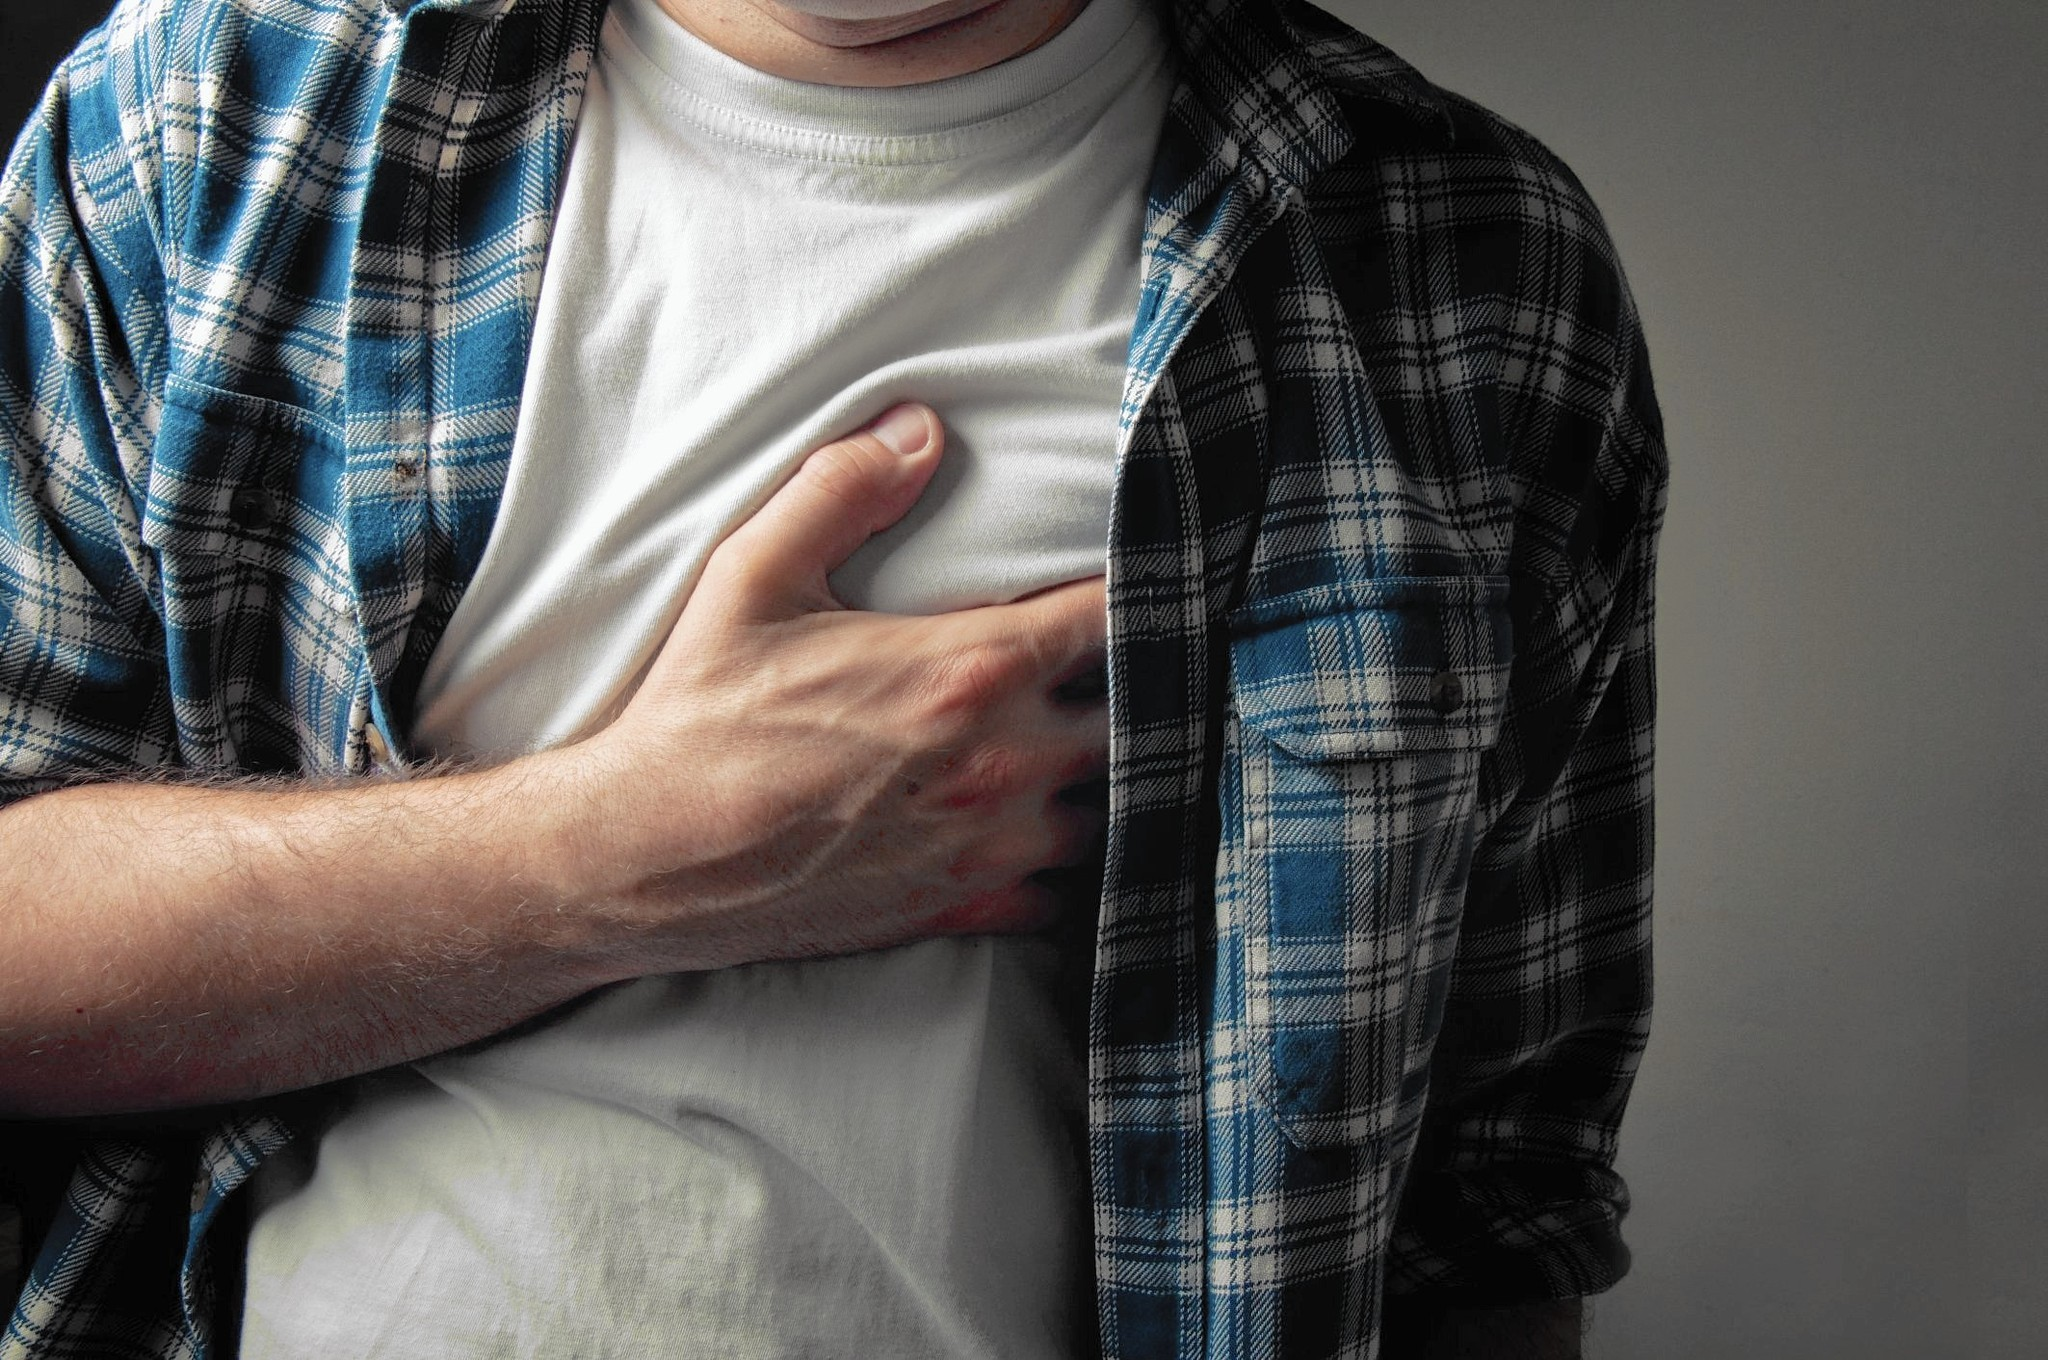 Stress can lead to 'broken heart syndrome'